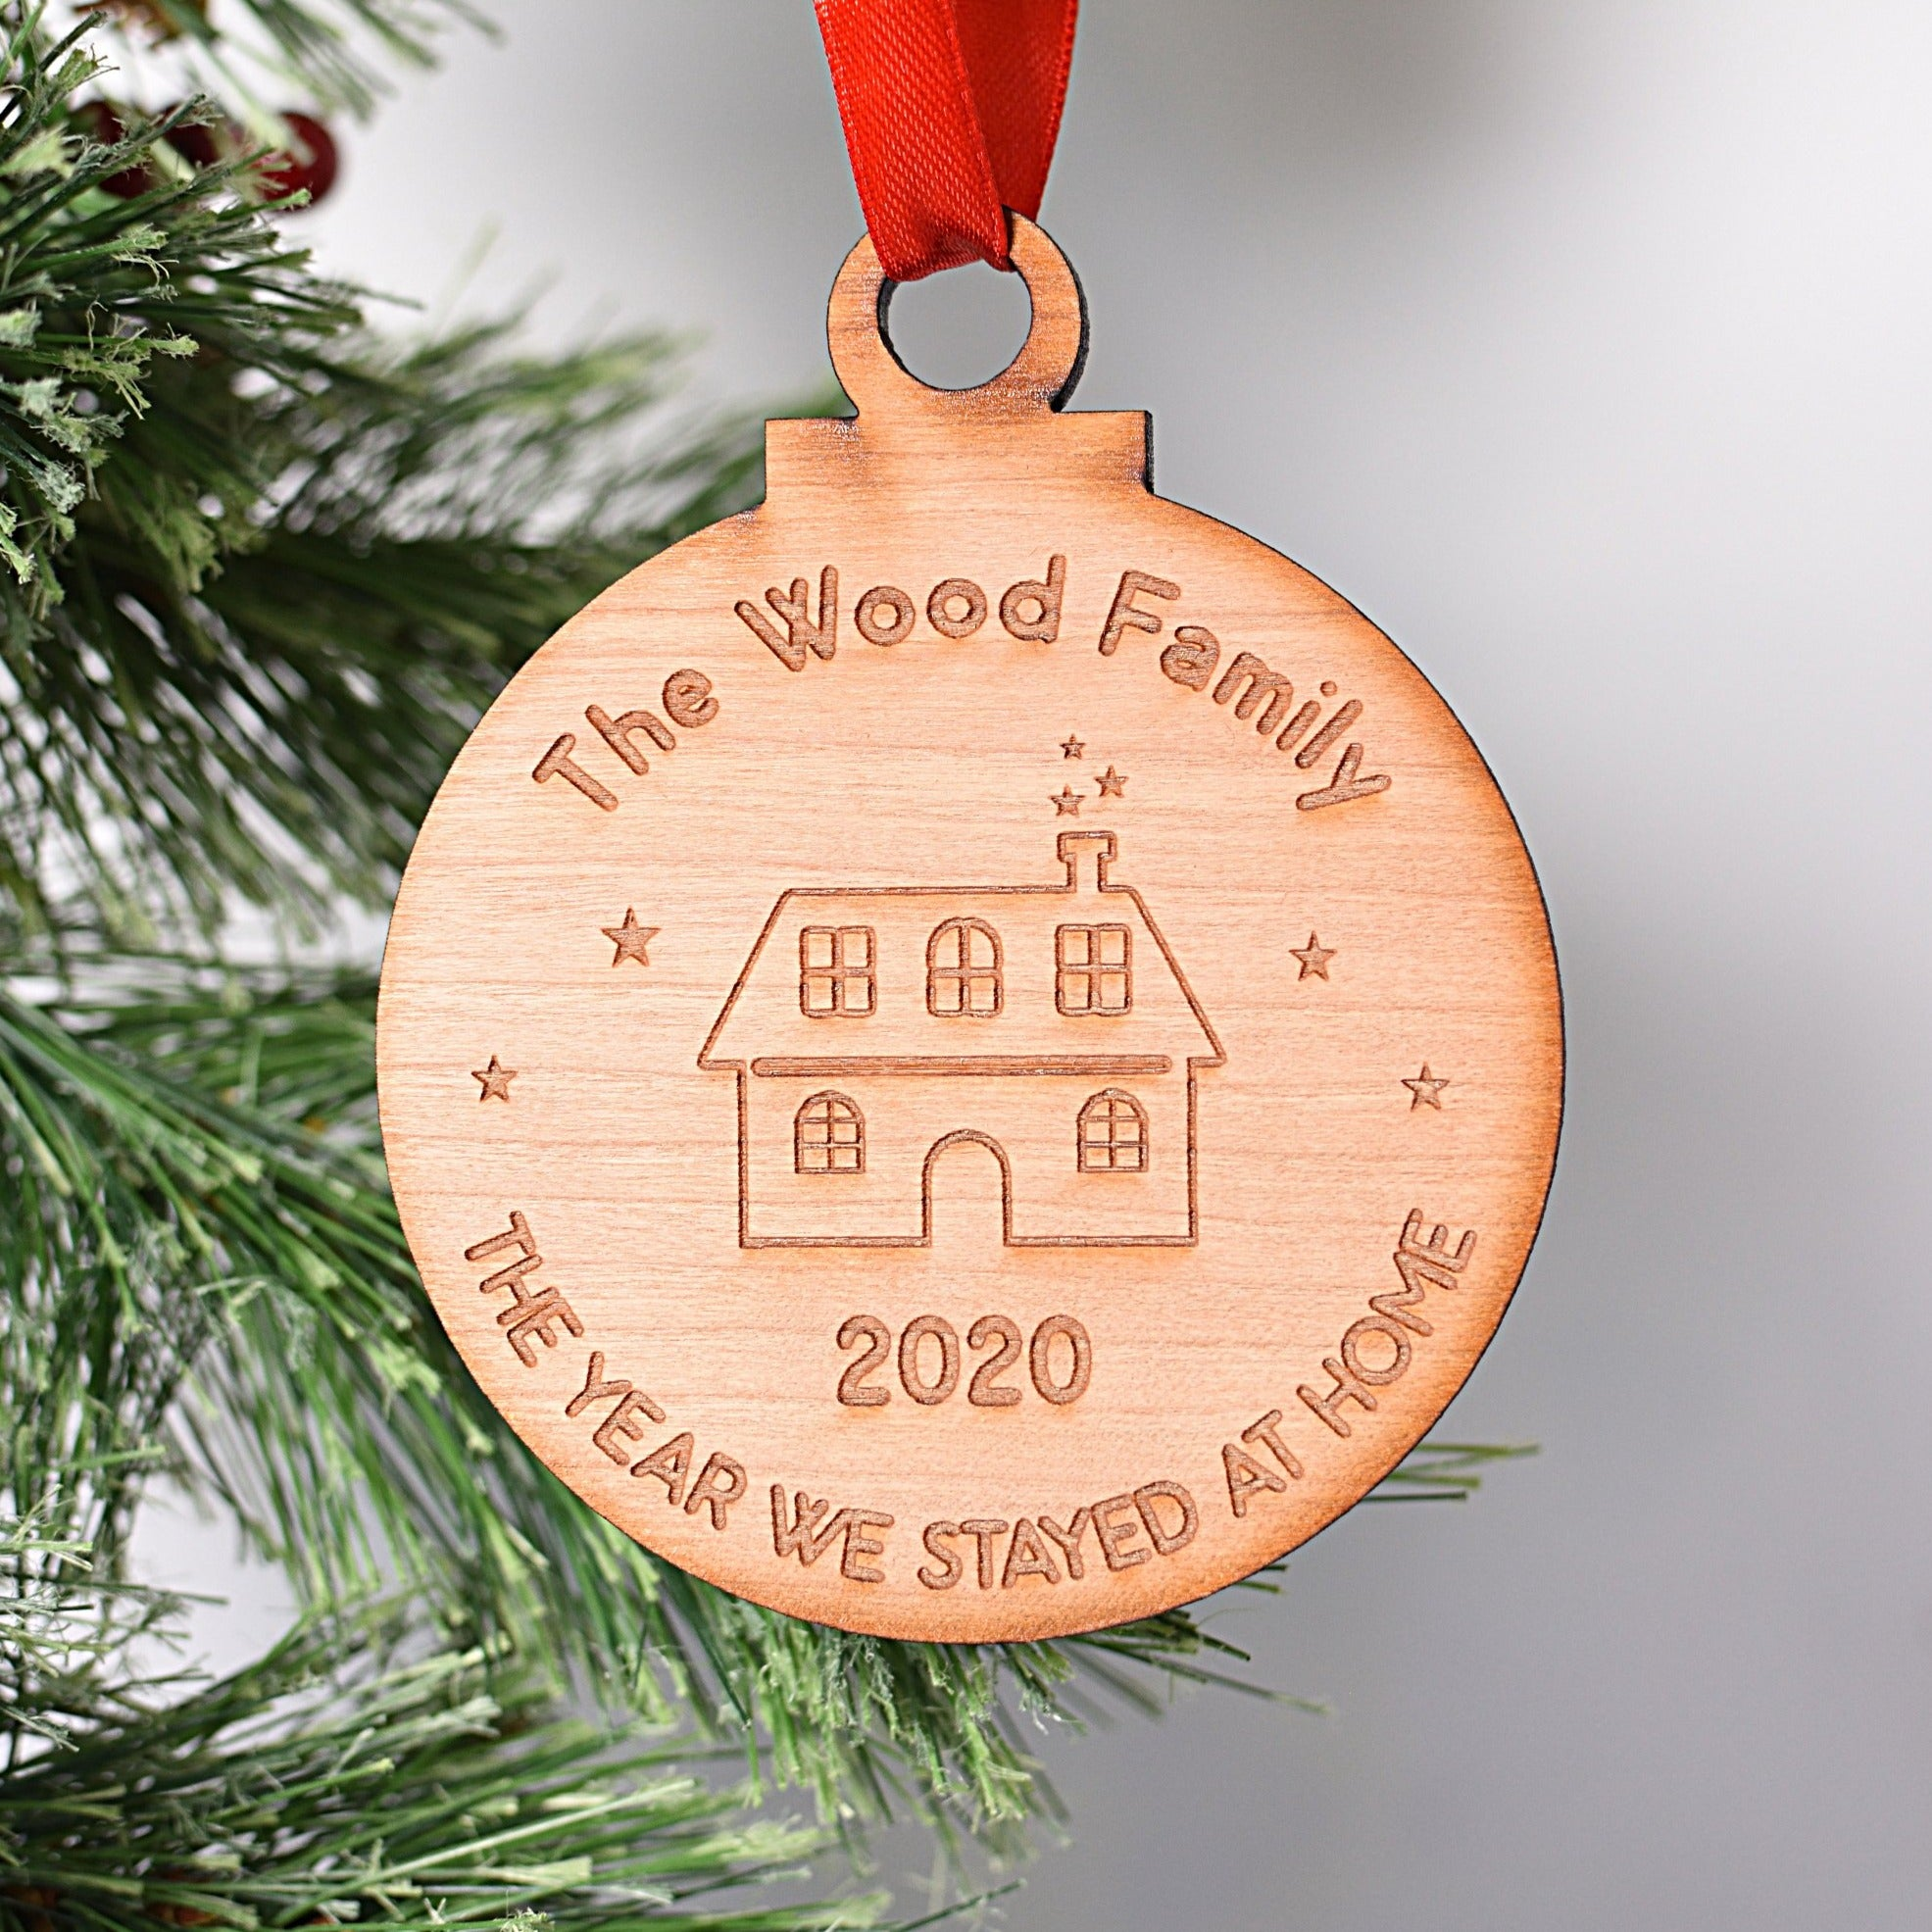 The Year We Stayed at Home Family Tree Decoration